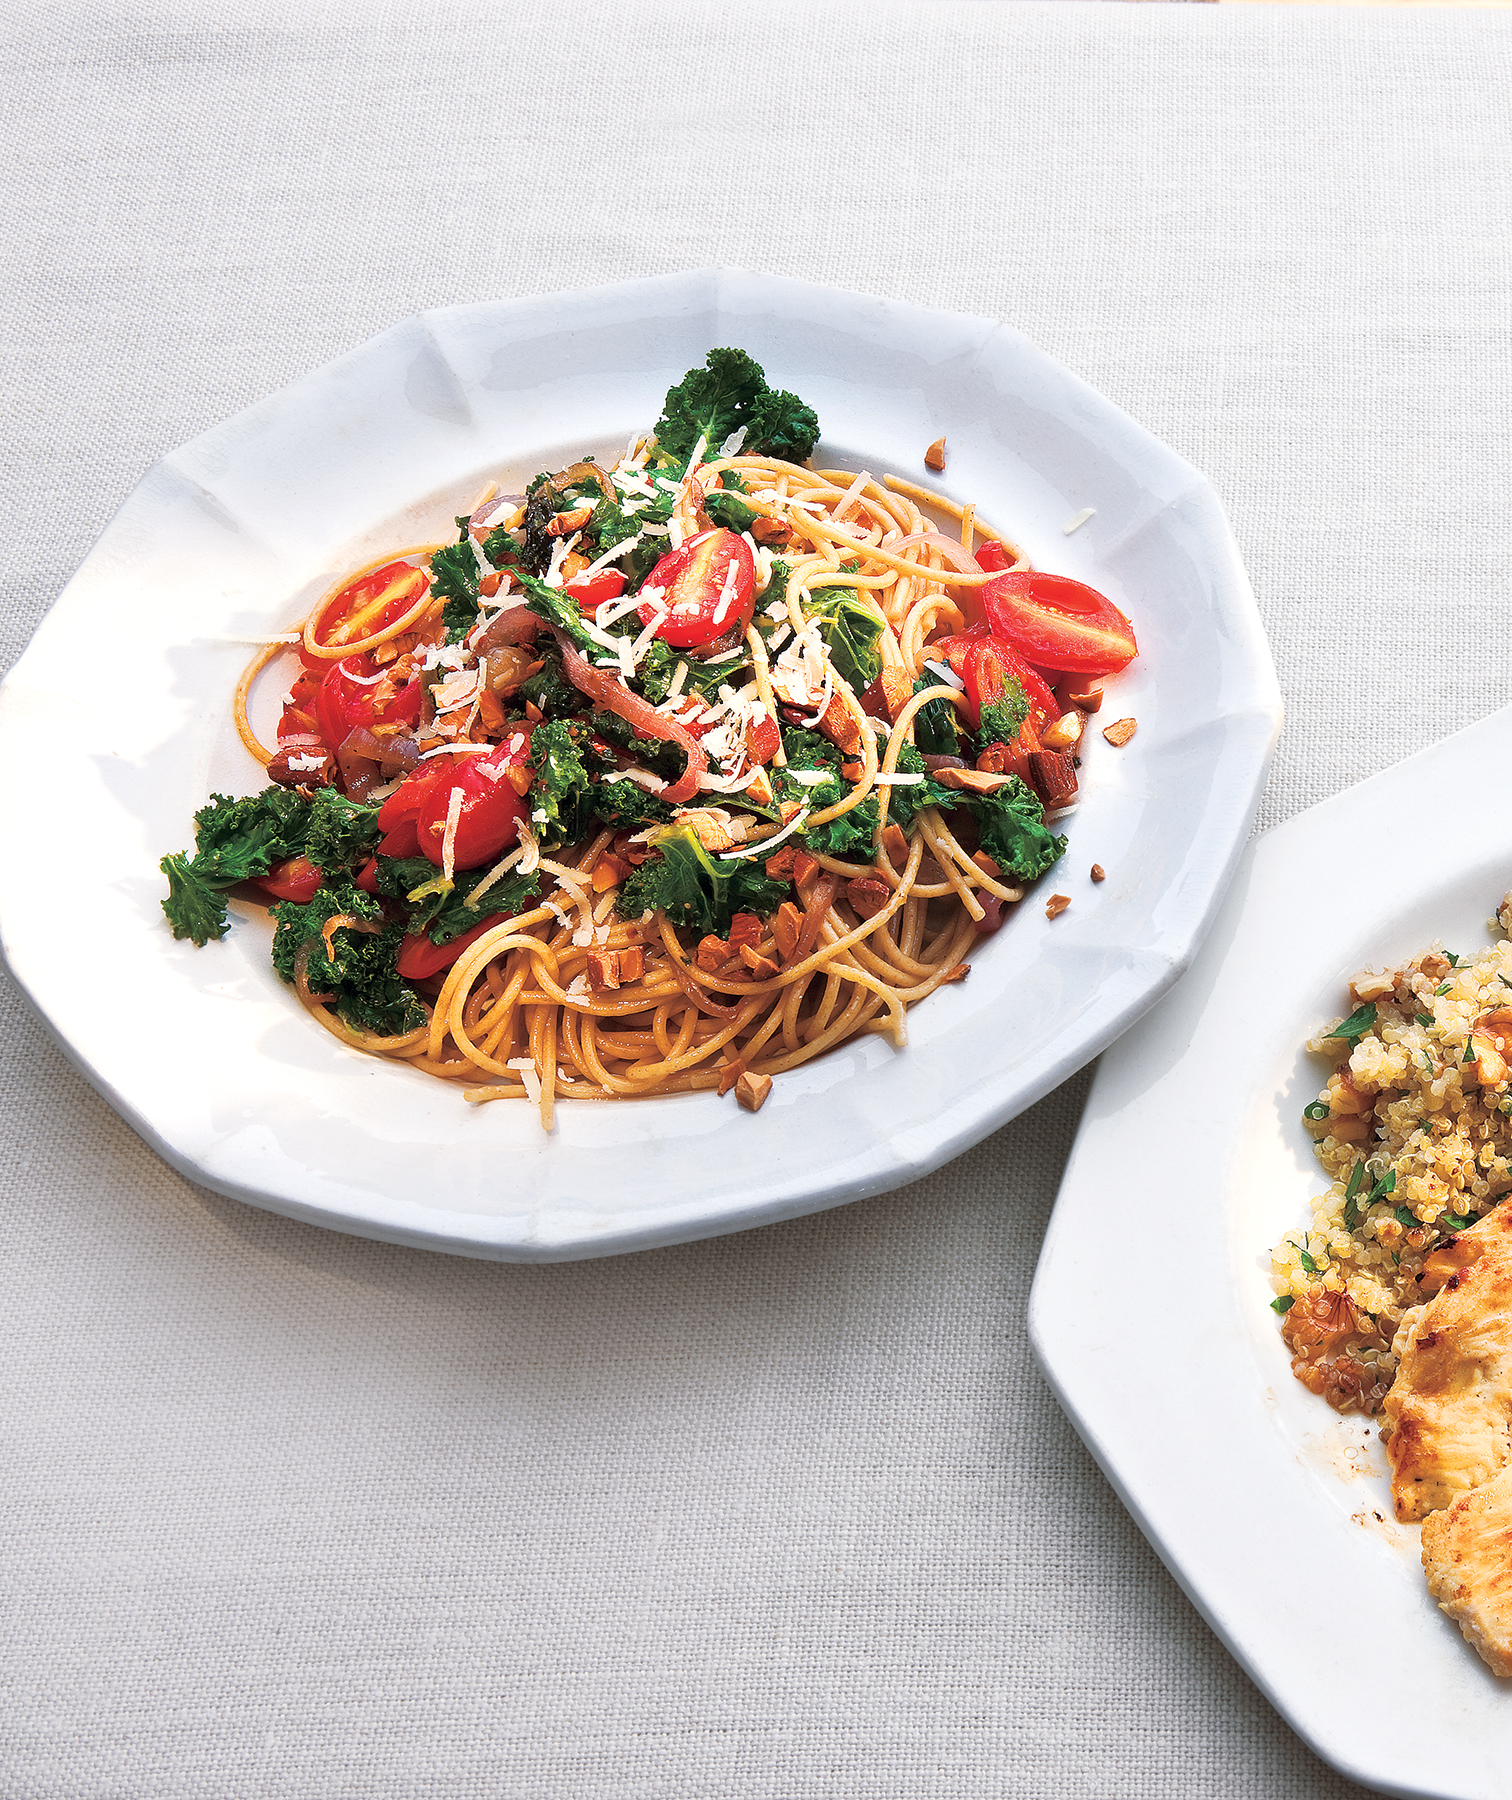 Whole-Grain Spaghetti With Garlicky Kale and Tomatoes